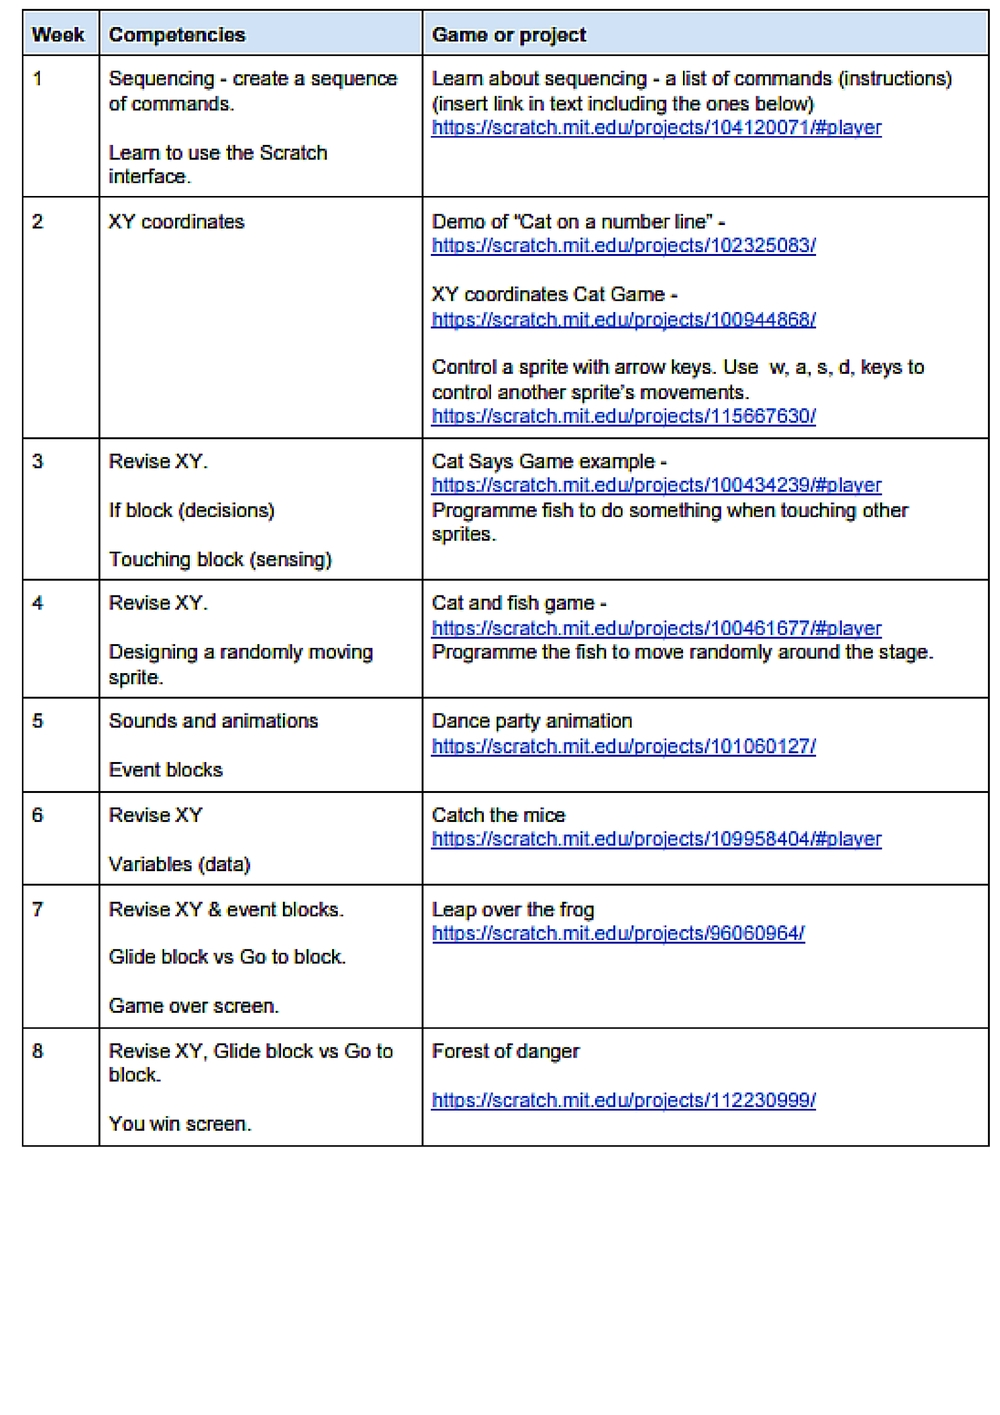 Course outline for Introductory Level Scratch Course for Years 2-3.